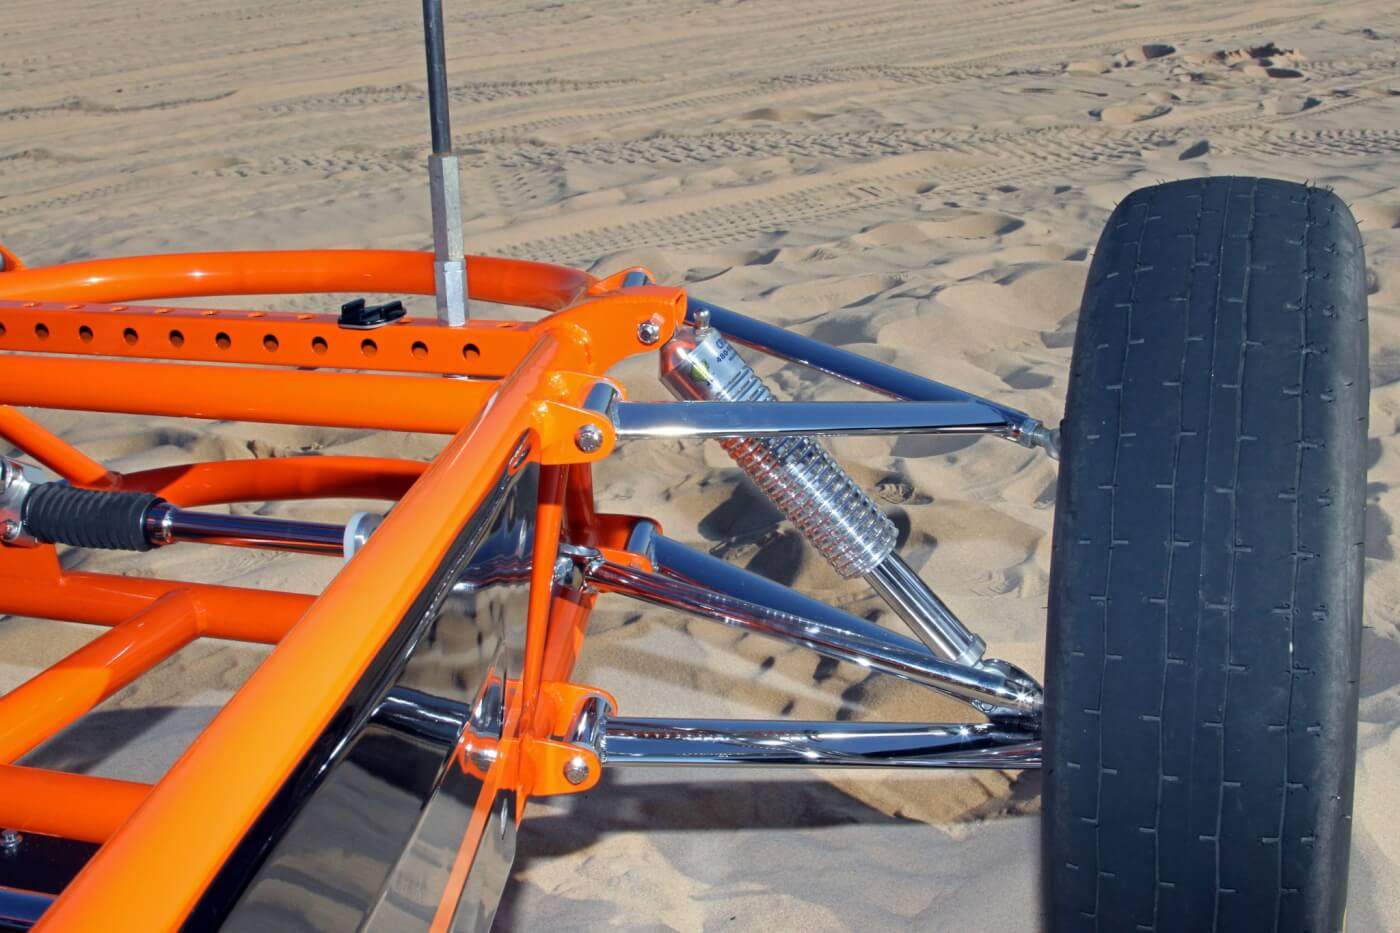 The front suspension features low profile A-arms along with polished MS Cruisers shocks to tame the bumps in the sand.